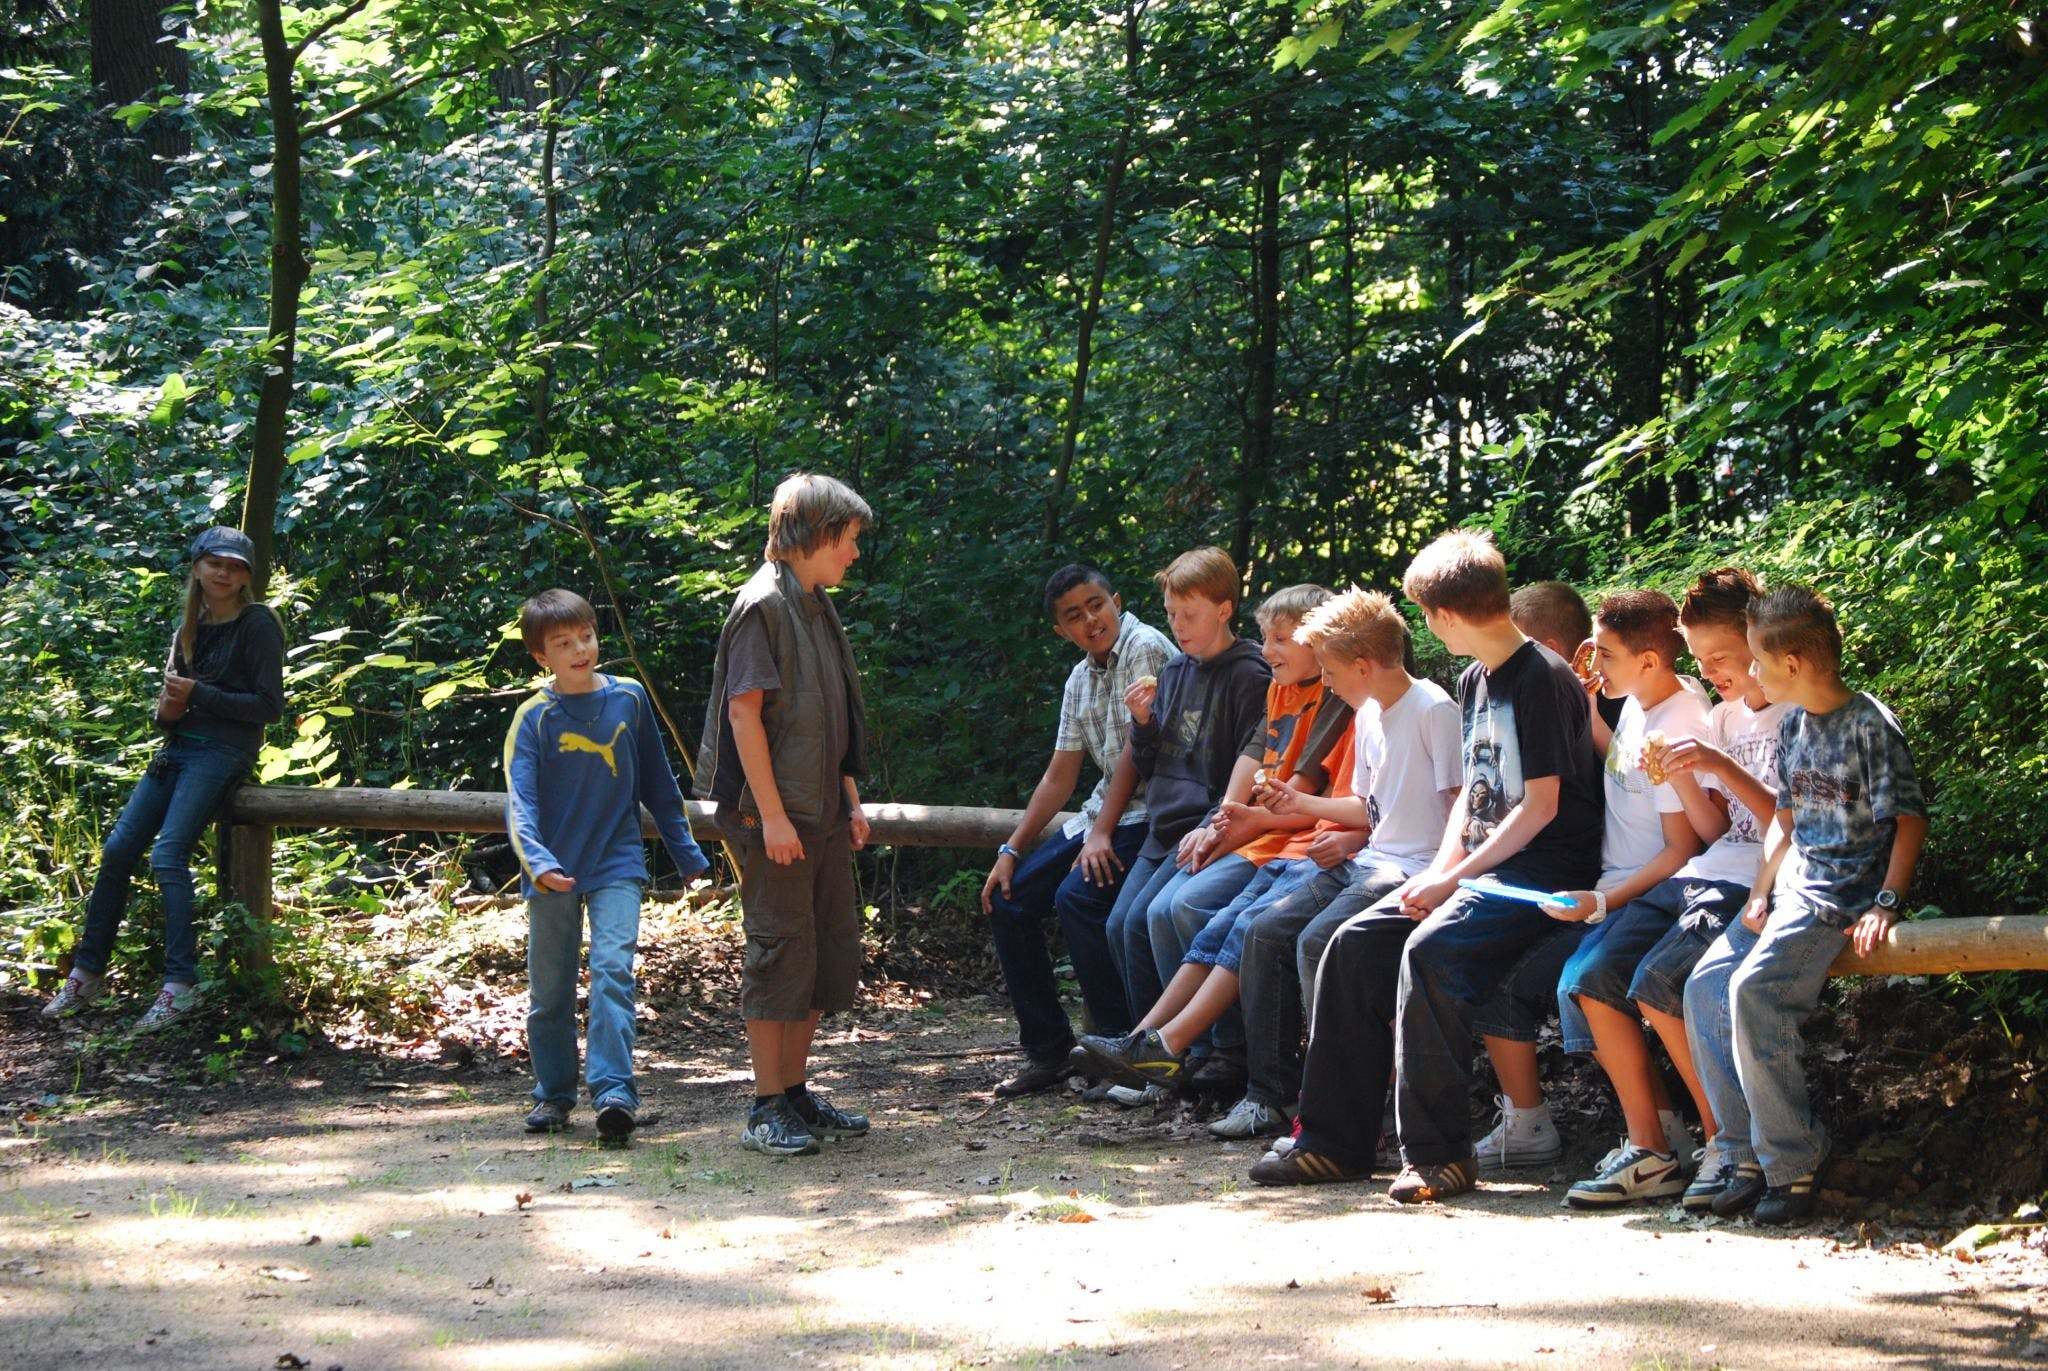 Free stock photo of forest, teenager, group, youth